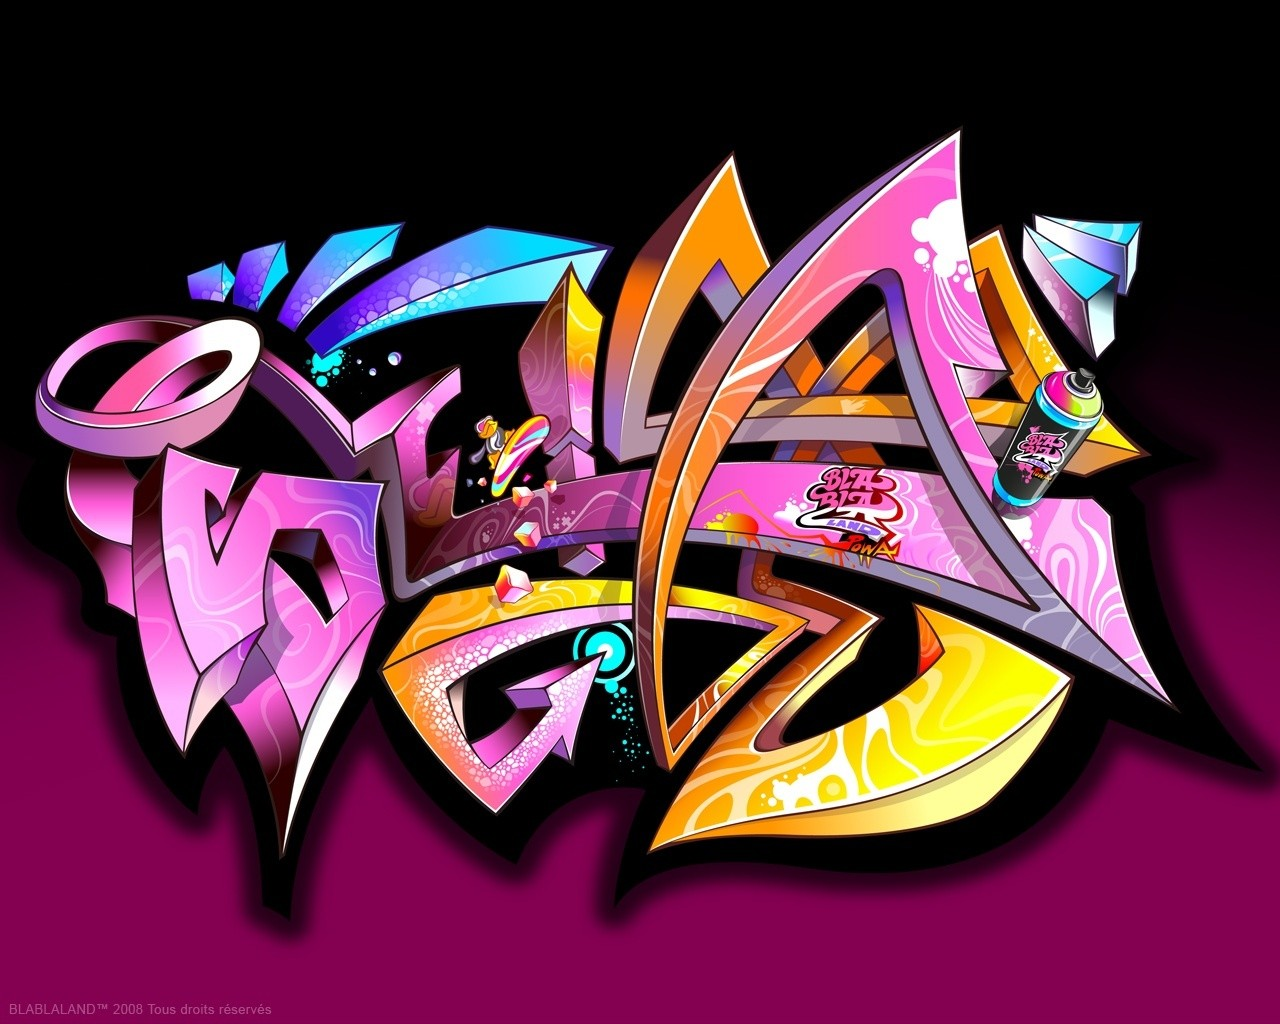 Download Abstract Graffiti Wallpaper 1280x1024 Wallpoper 1280x1024